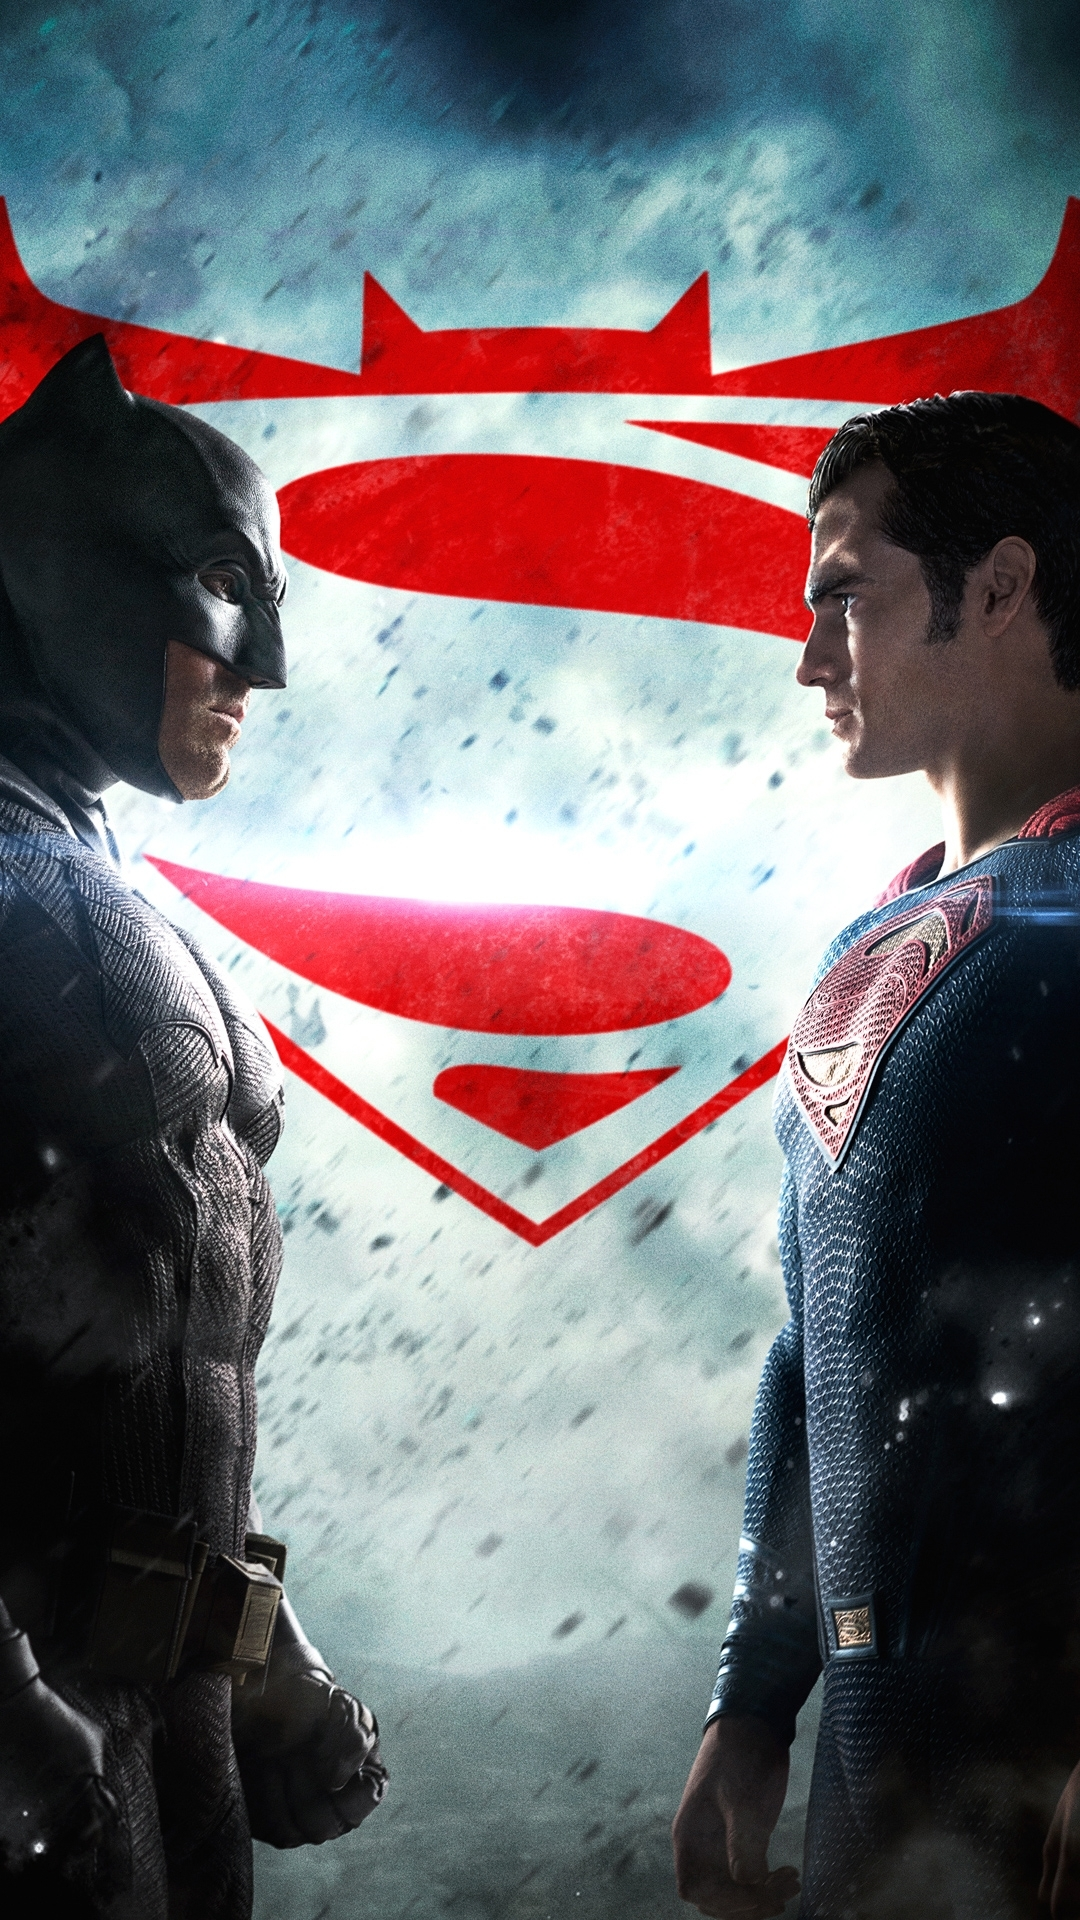 10 Top Batman Vs Superman Iphone Wallpaper FULL HD 1920×1080 For PC Background